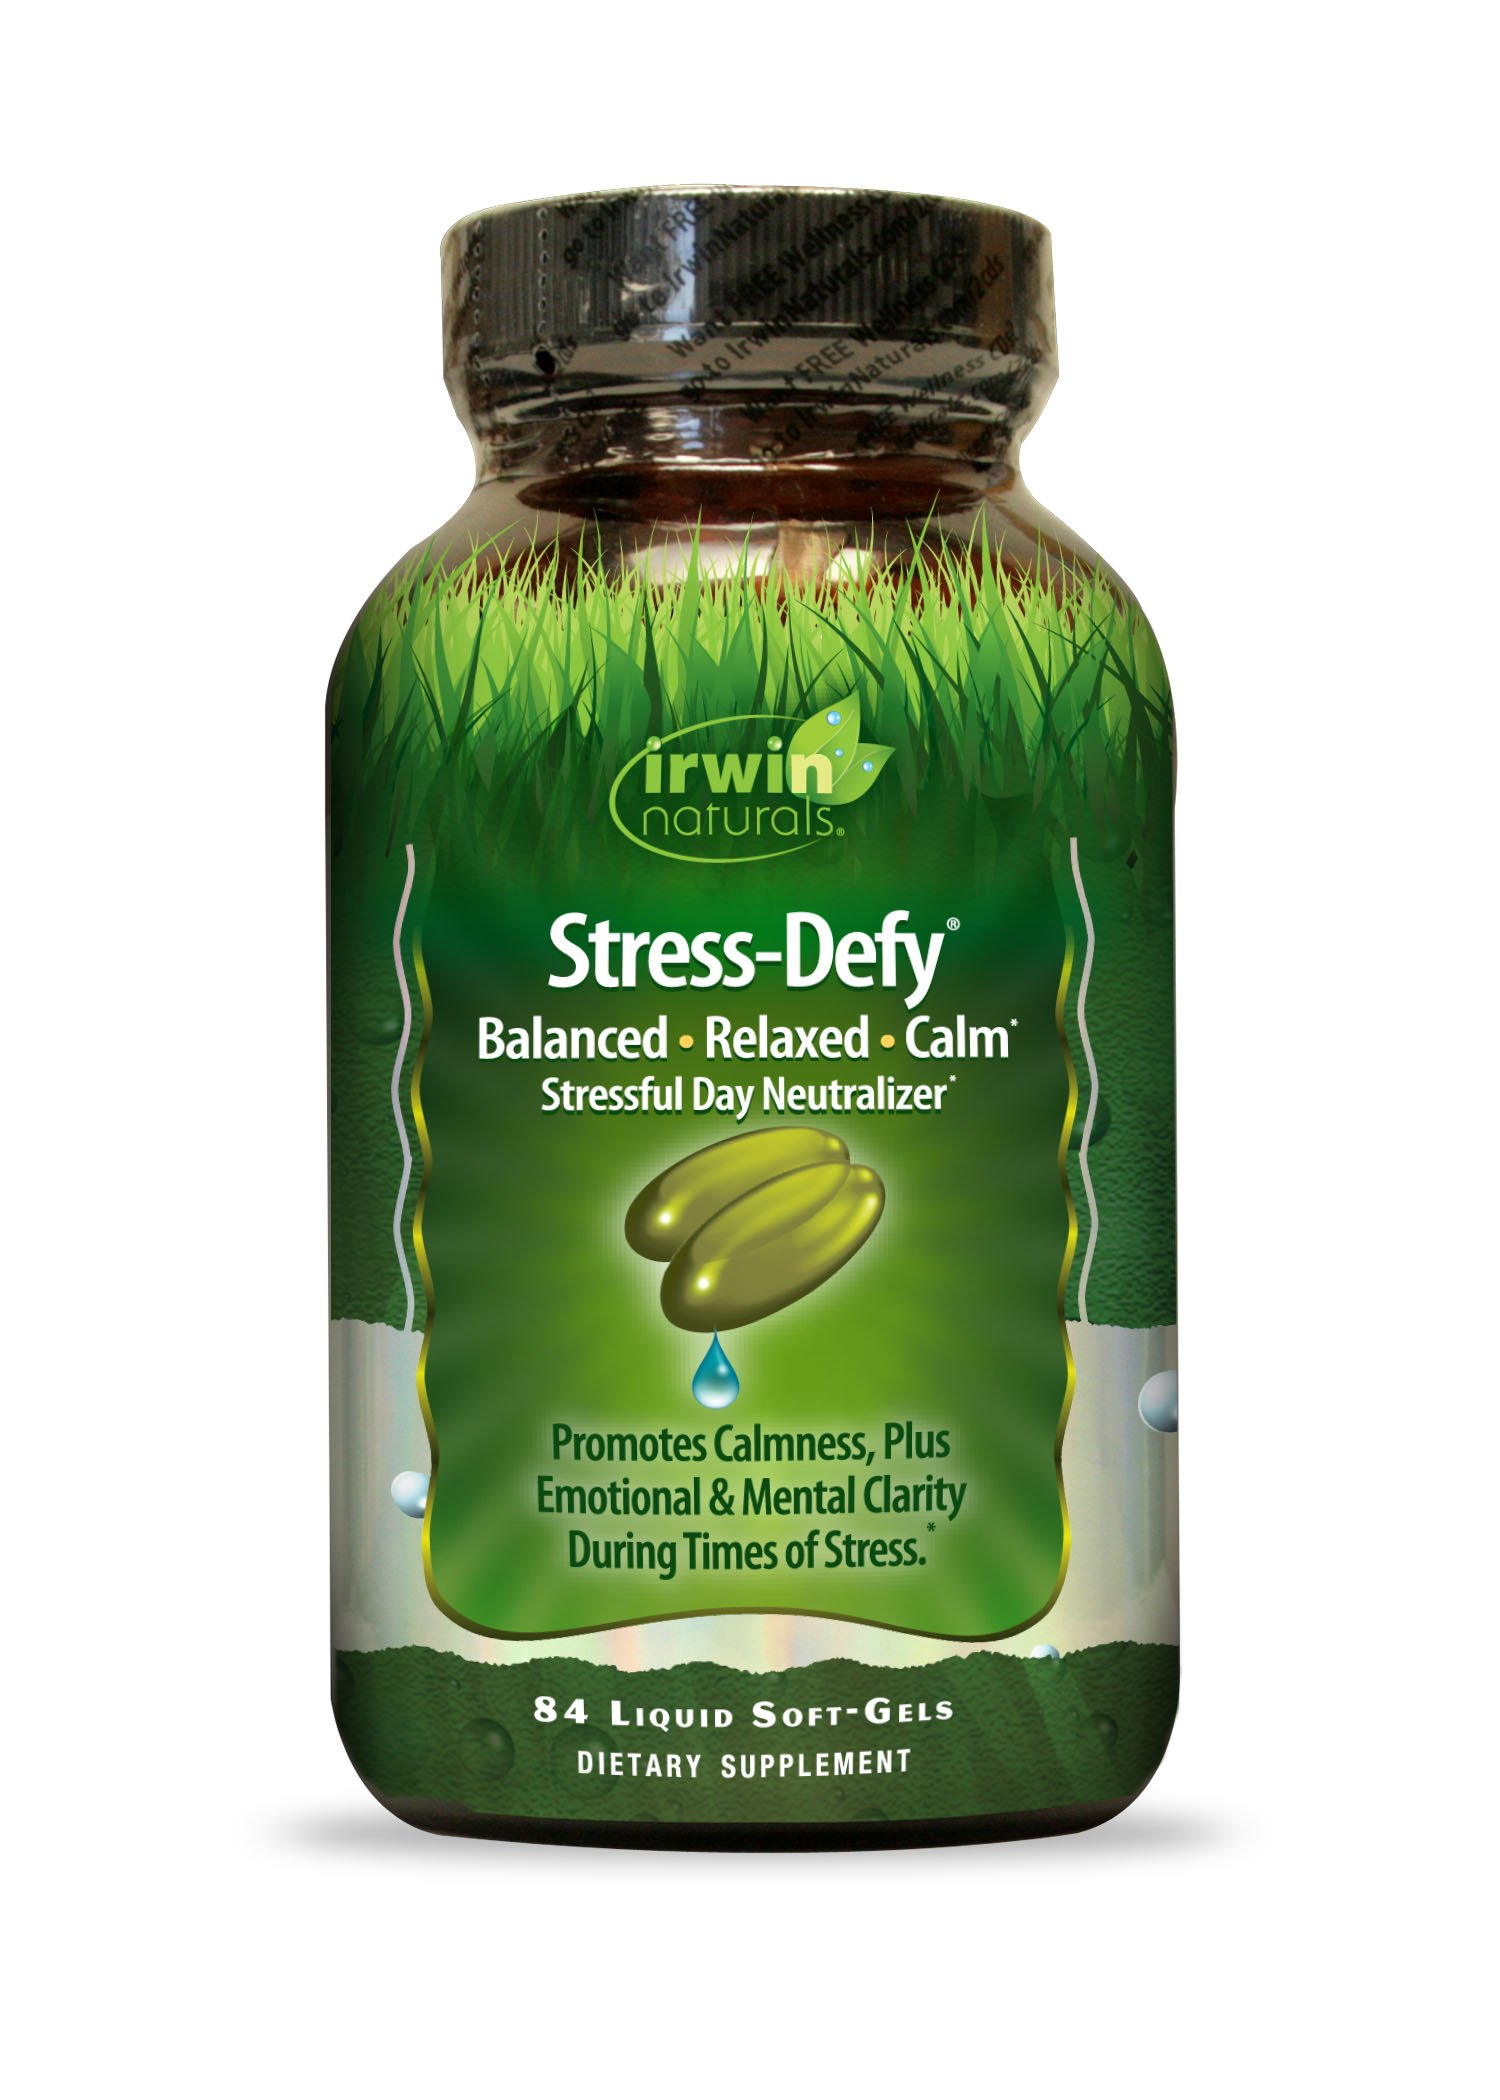 Irwin Naturals Stress-Defy, Balanced Relaxed Calm, Stressful Day Neutralizer, 84 Liquid Softgels by Irwin Naturals (Image #1)